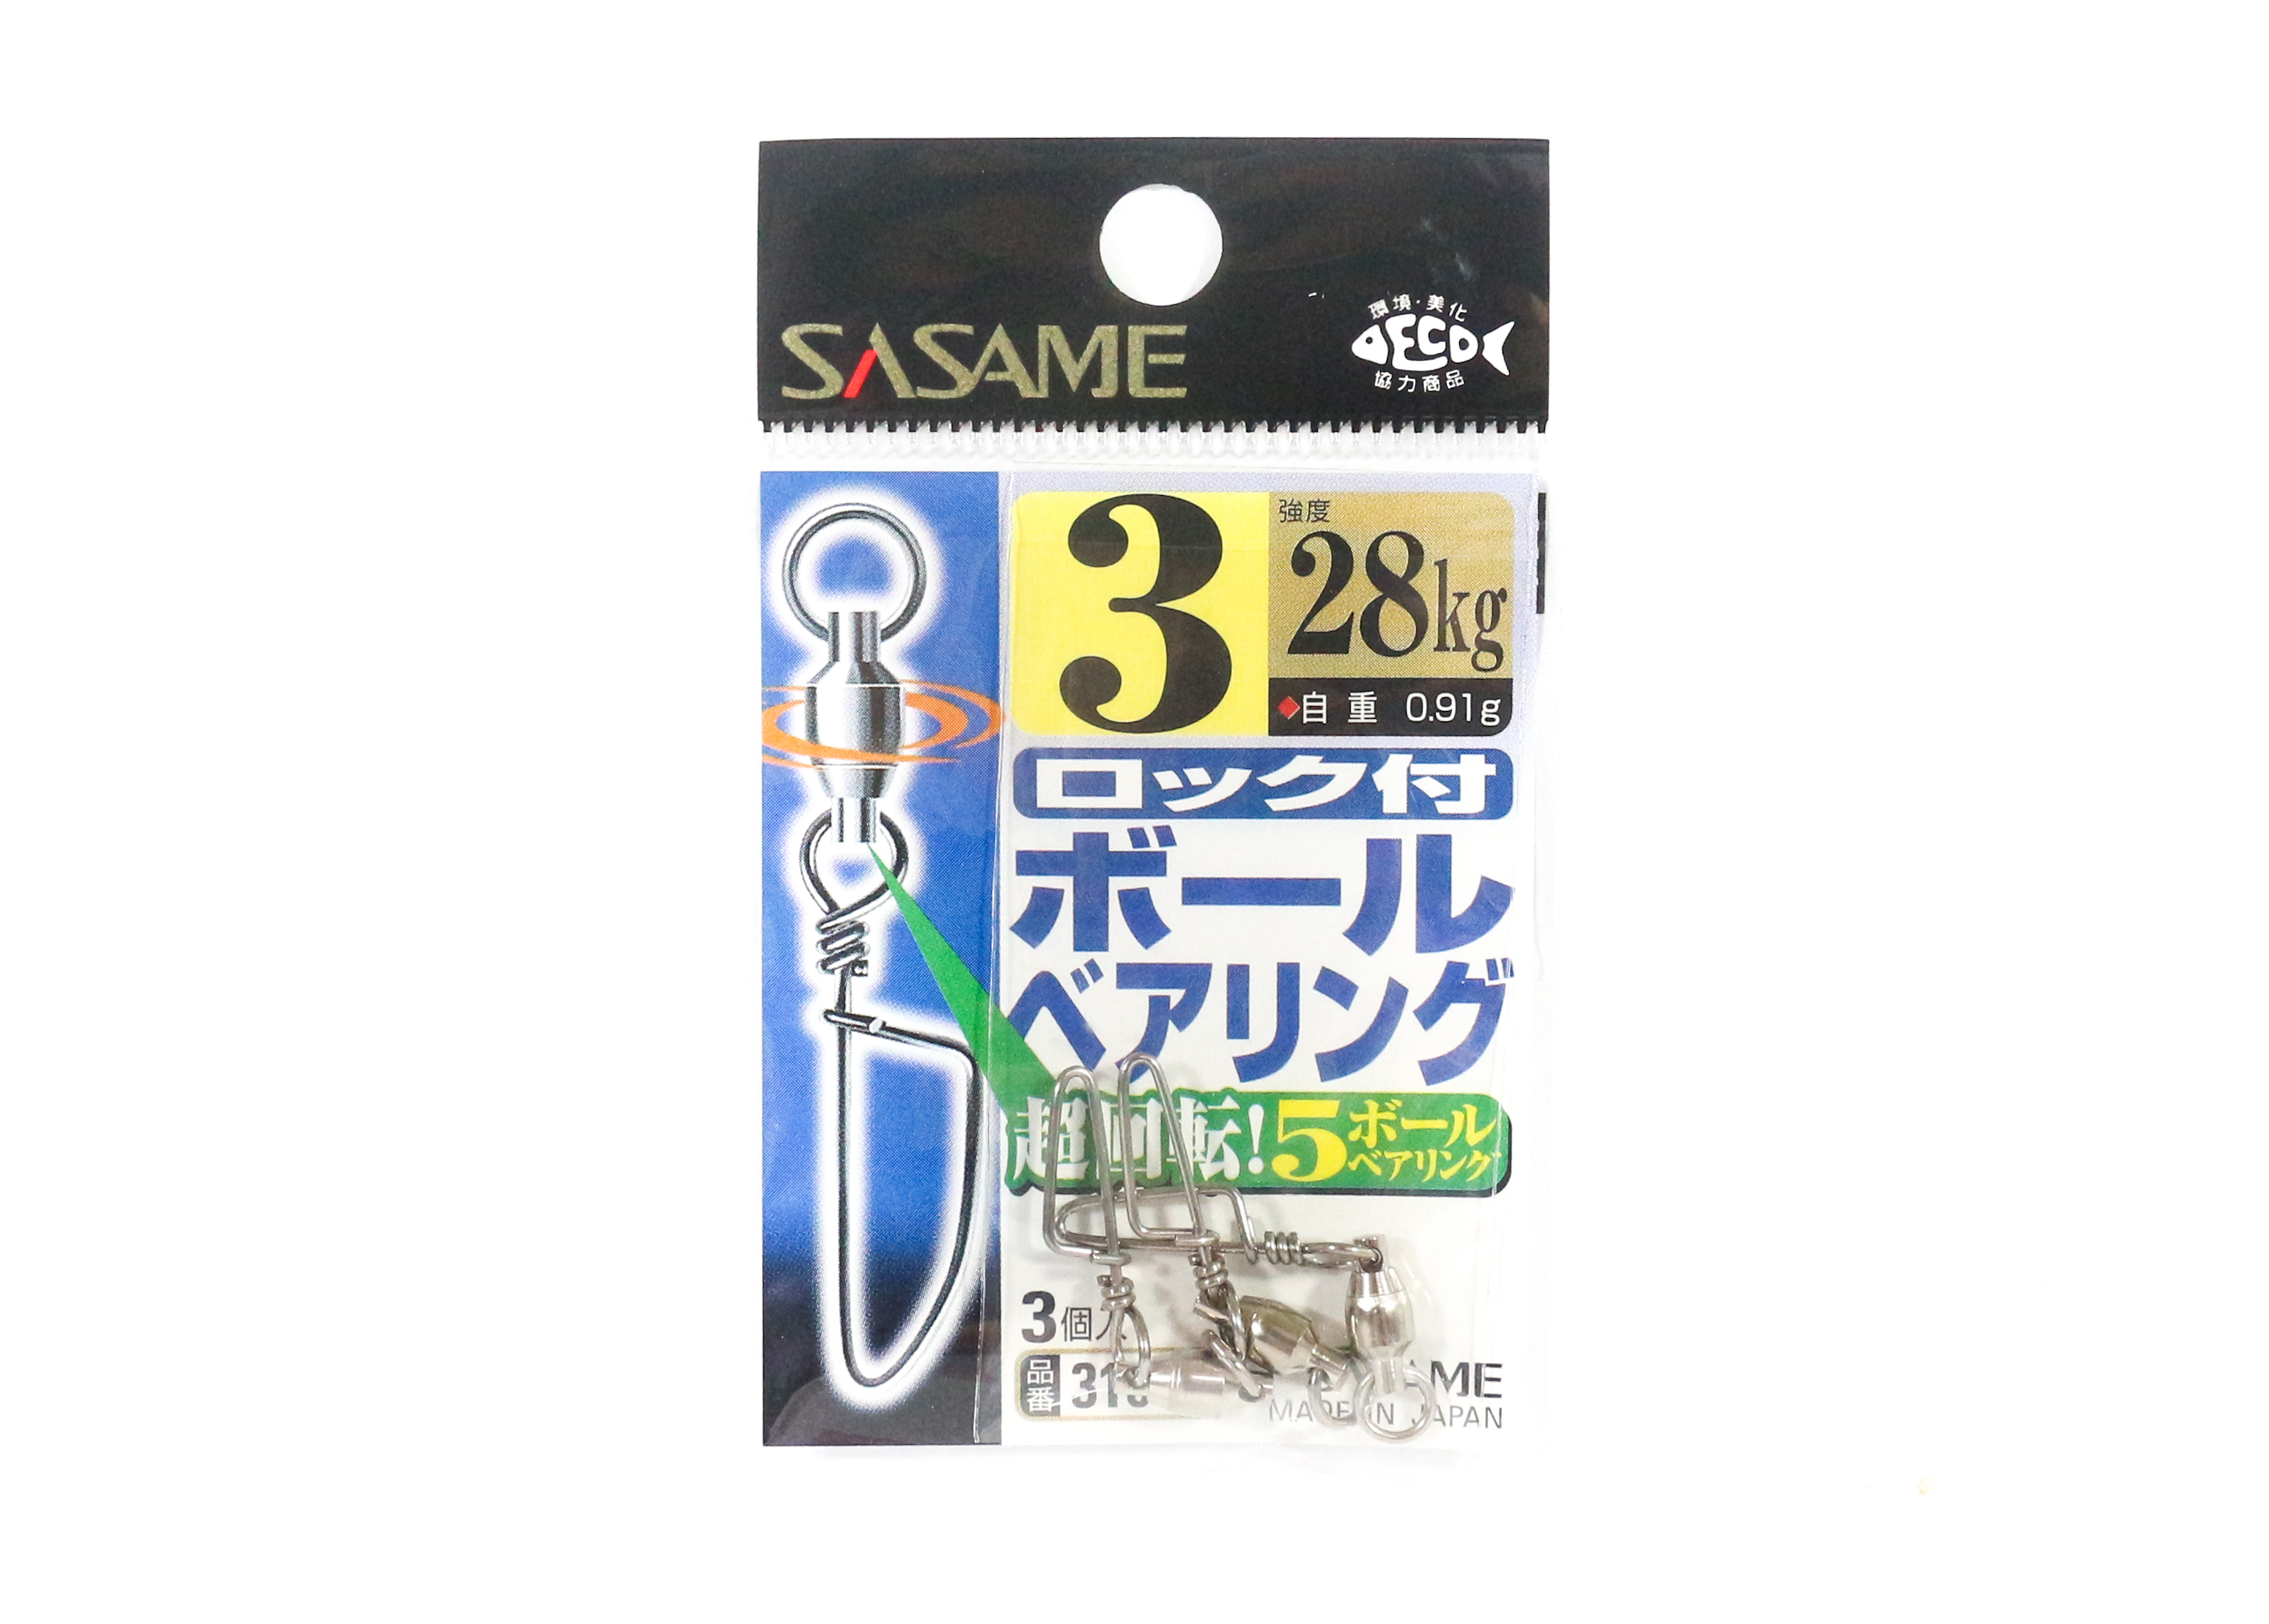 Sasame 310-C Ball Bearing Snap Swivels High Quality Size 3 (1720)